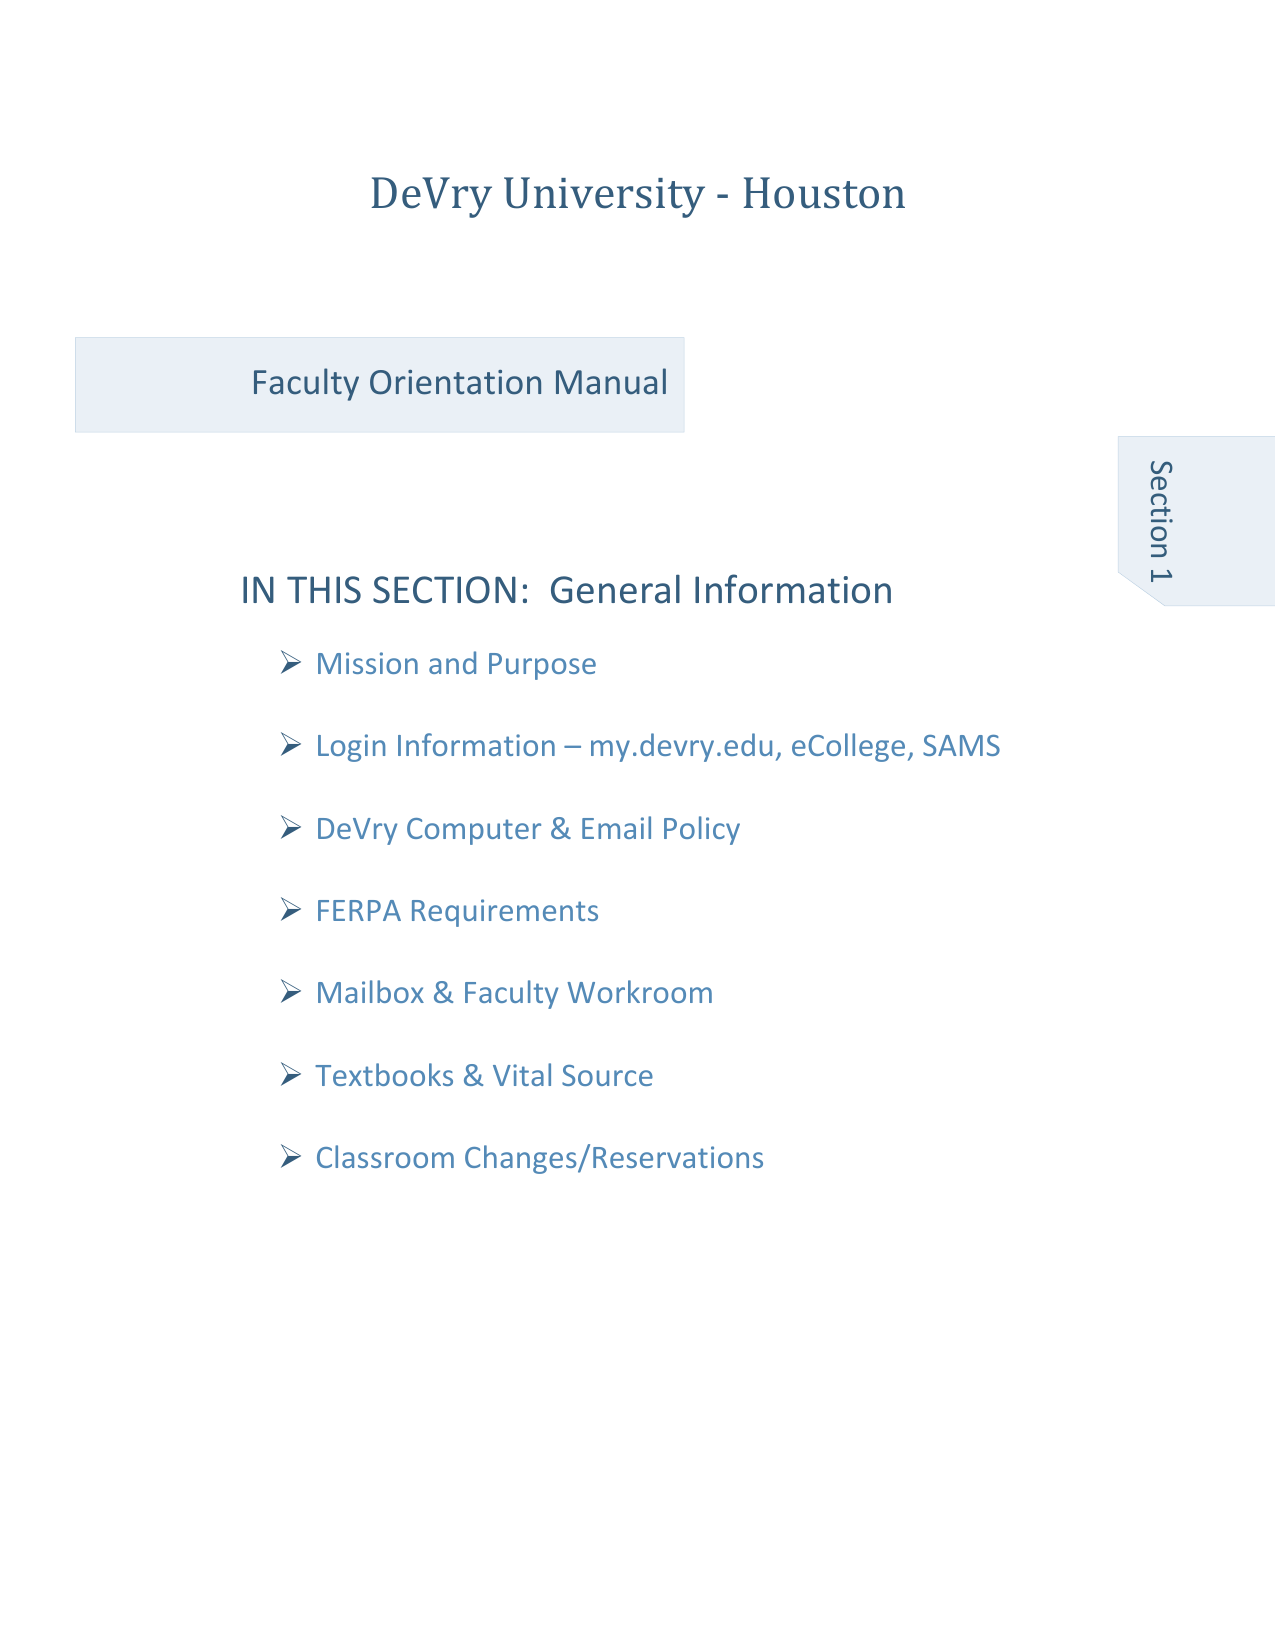 devry canvas login